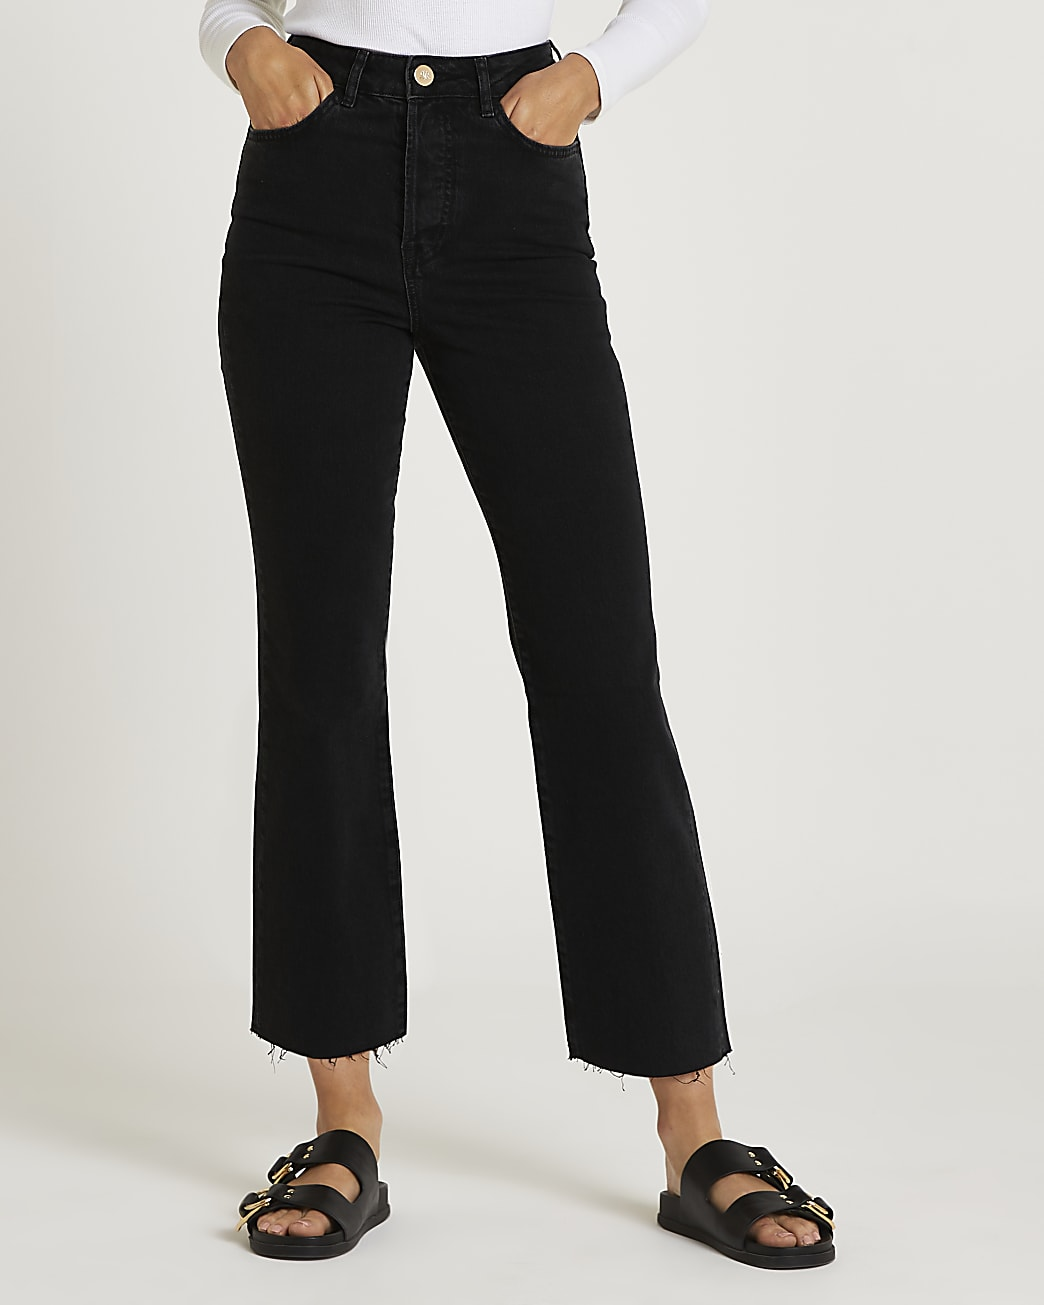 Black high waisted flared jeans